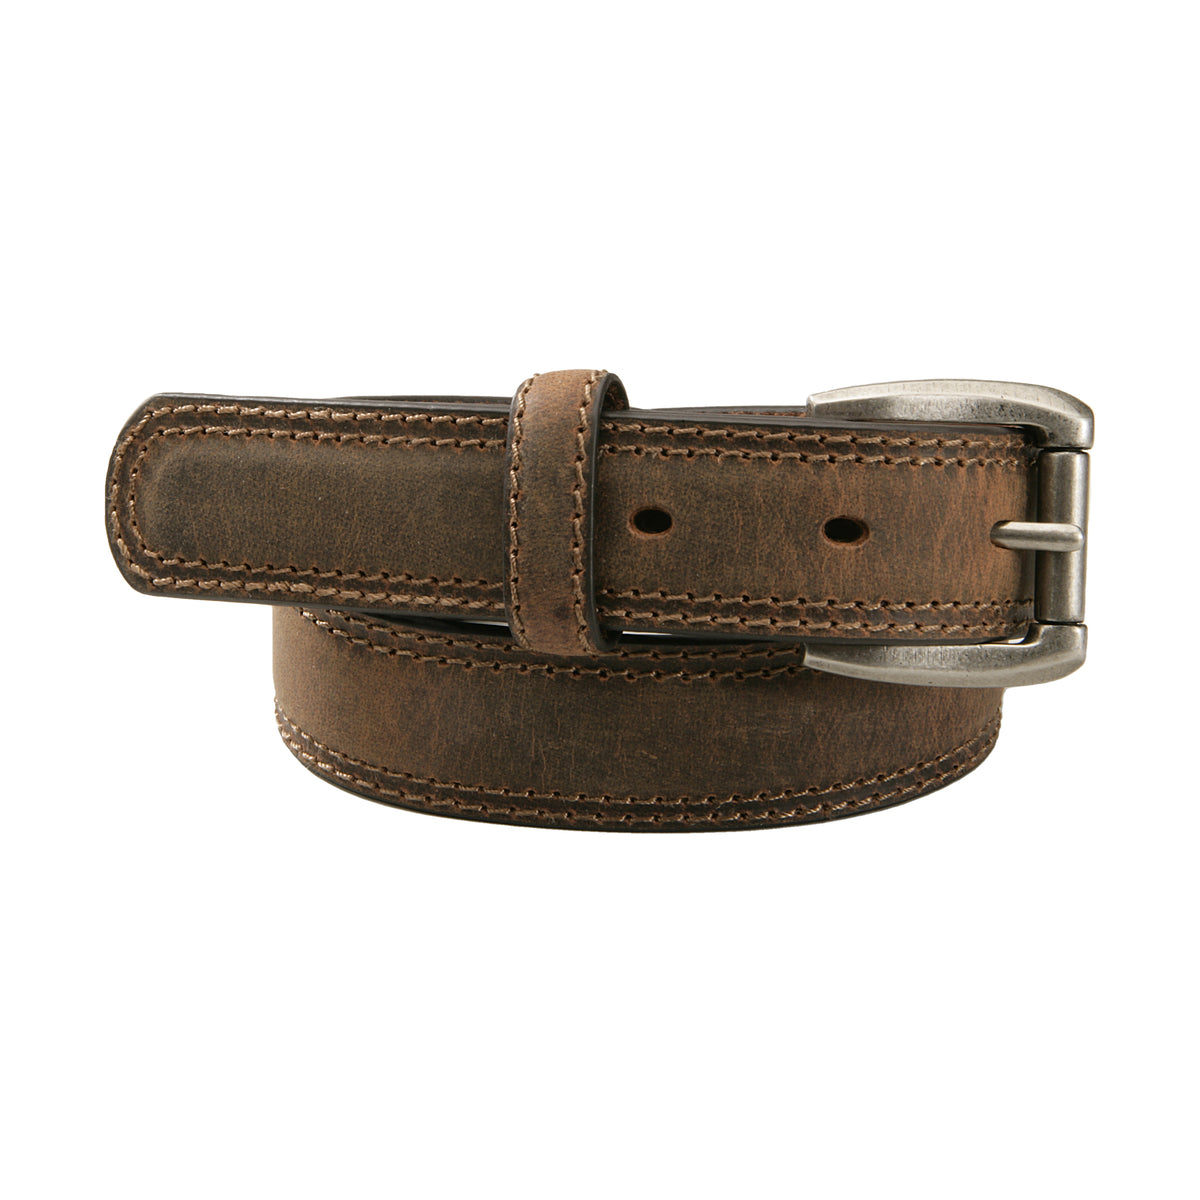 "Kids' 1 1/4"" Roller Buckle Belt"